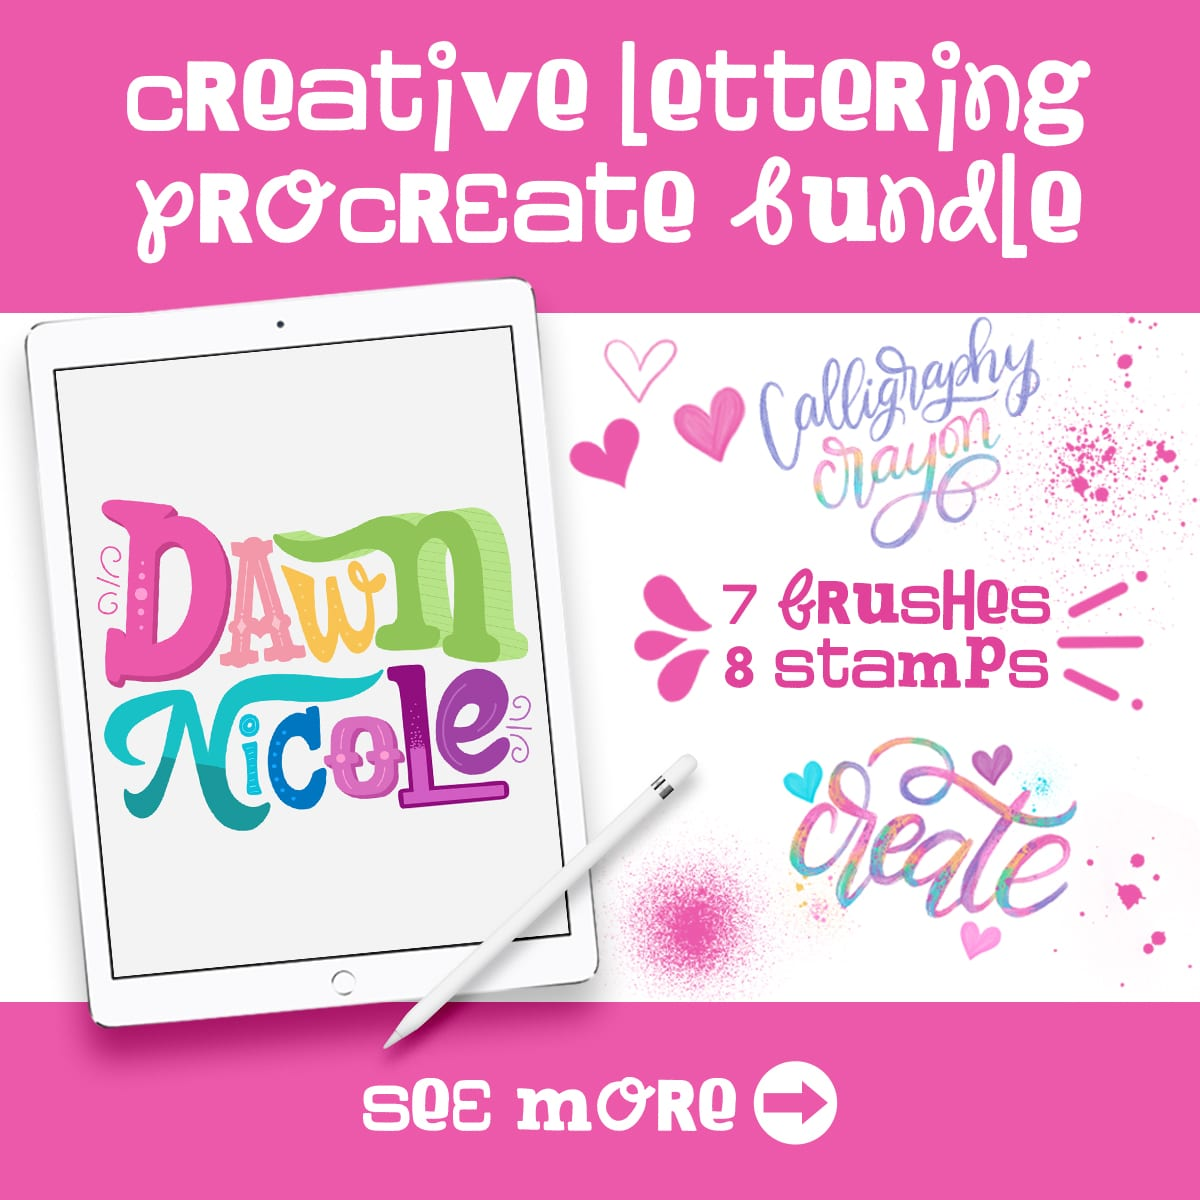 NEW! Creative Lettering Procreate Bundle